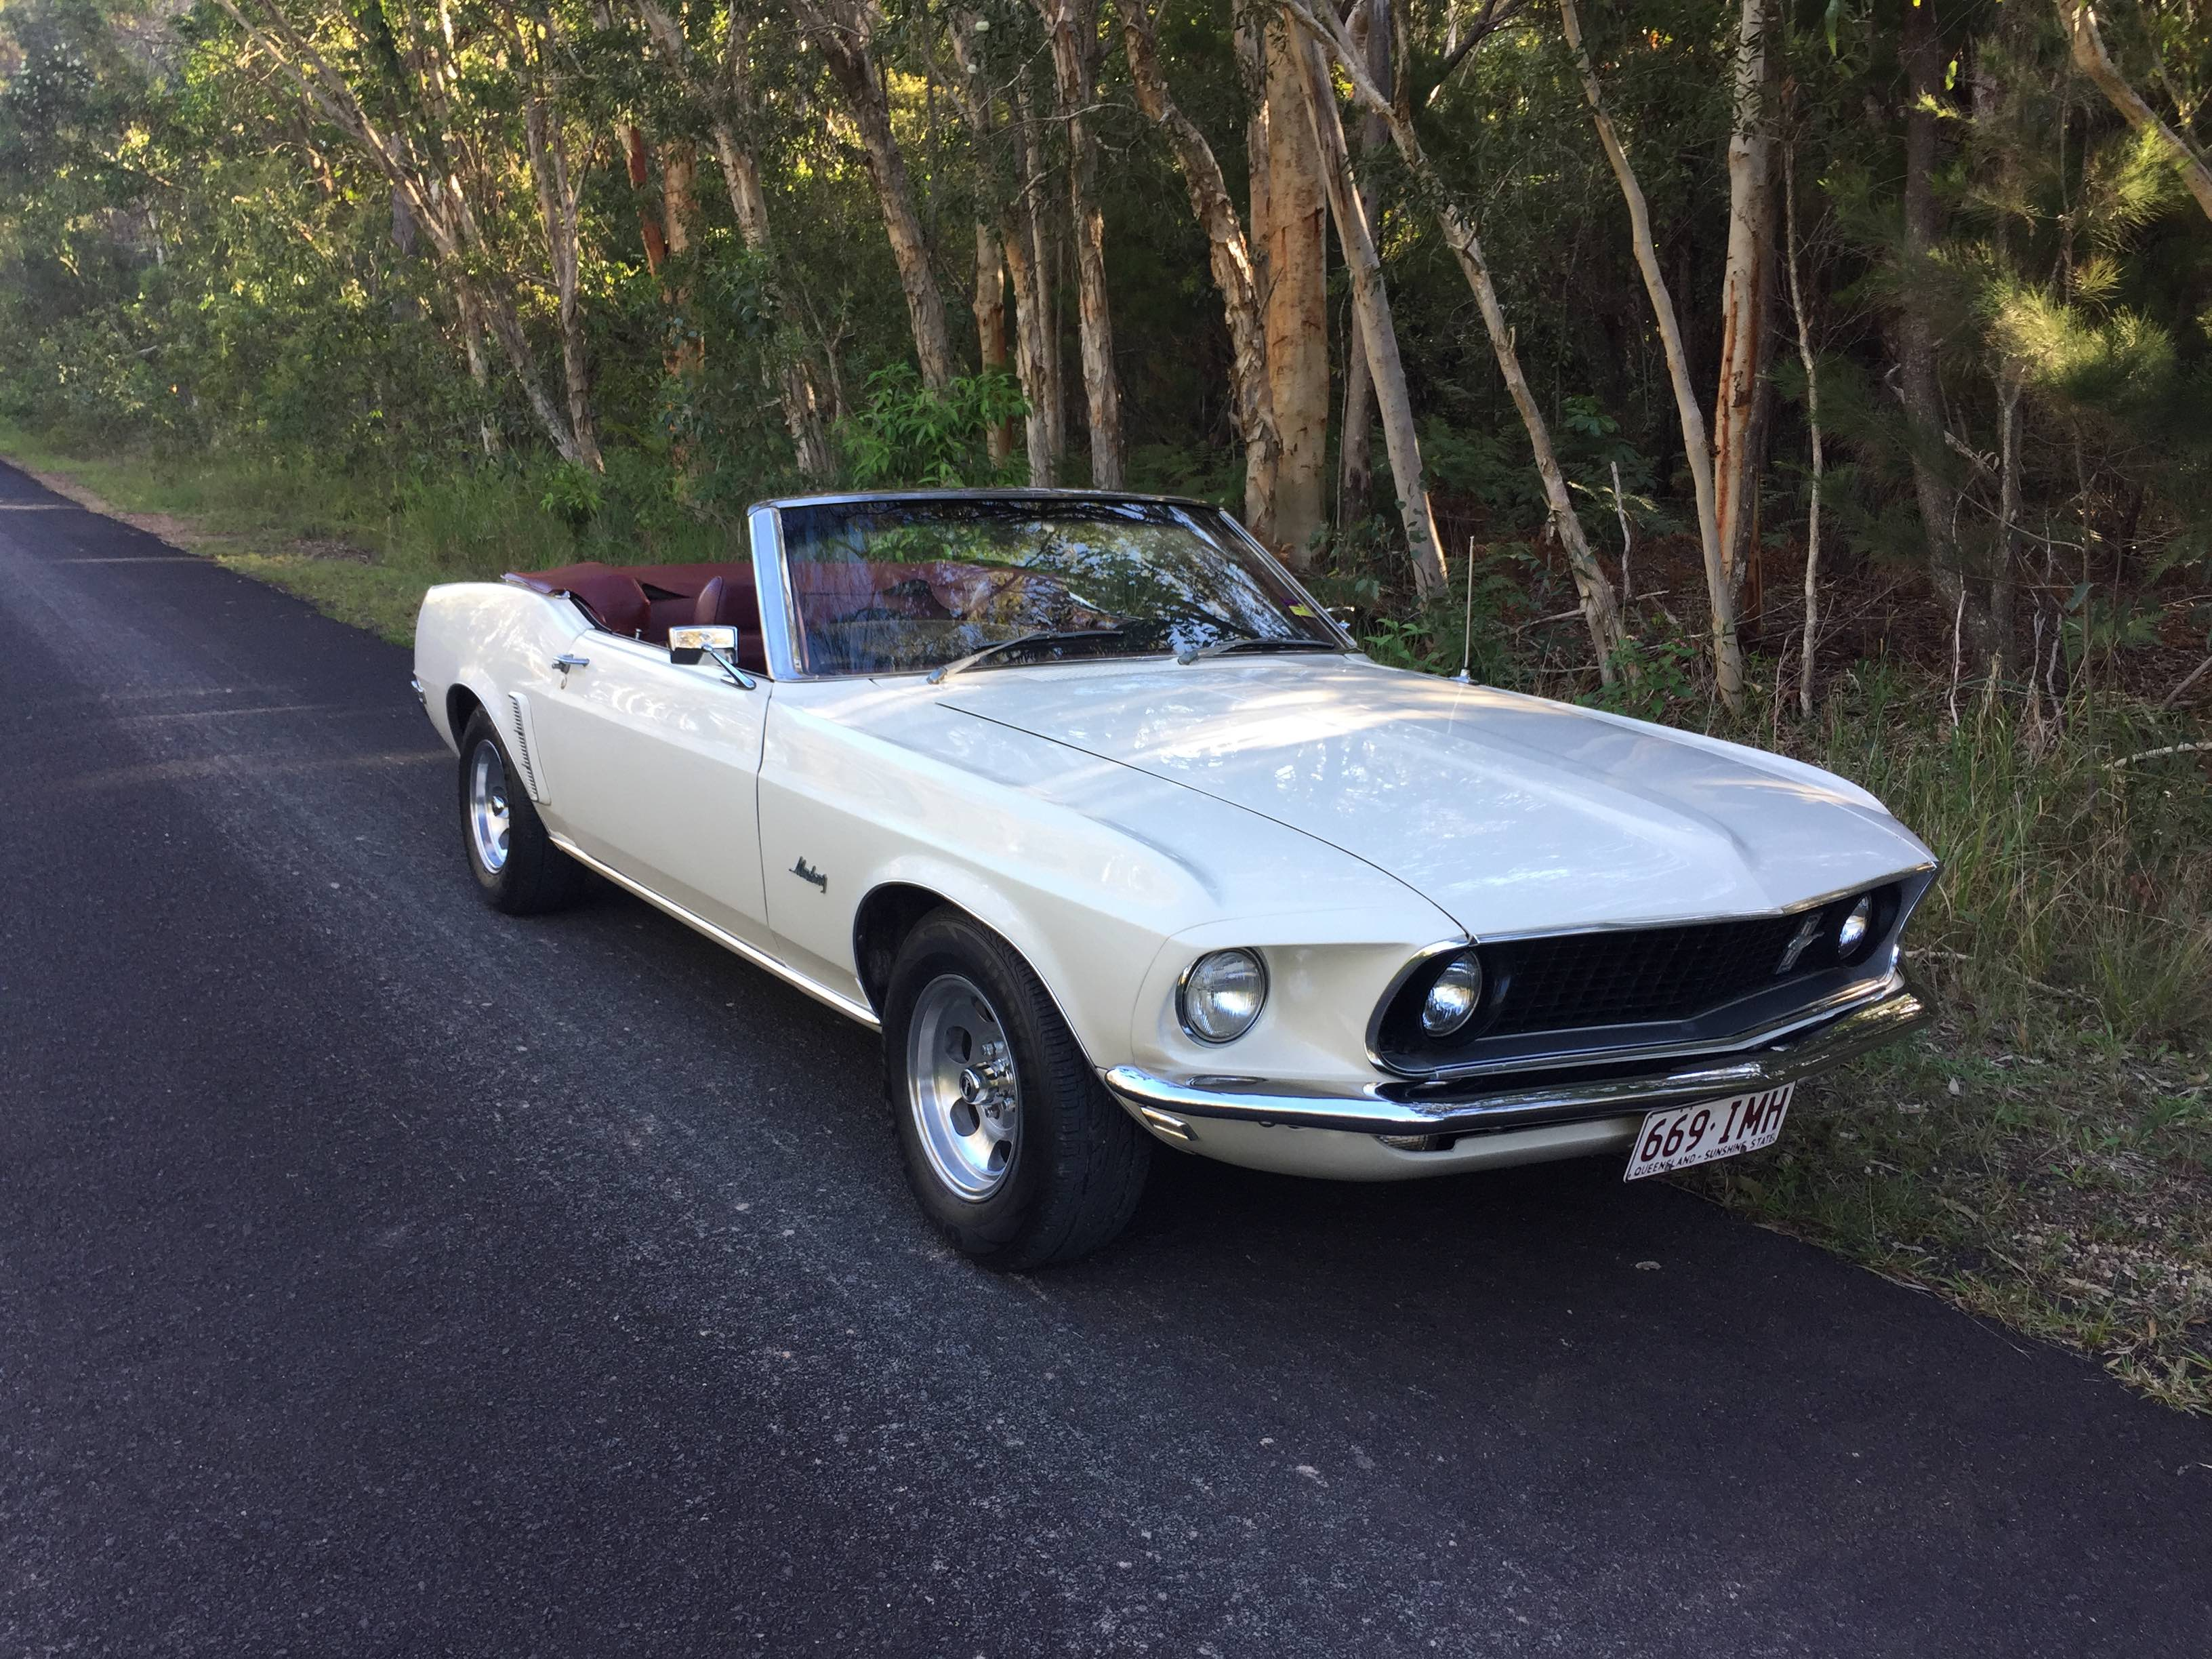 Ford Mustang Cars for sale in Australia - JUST CARS